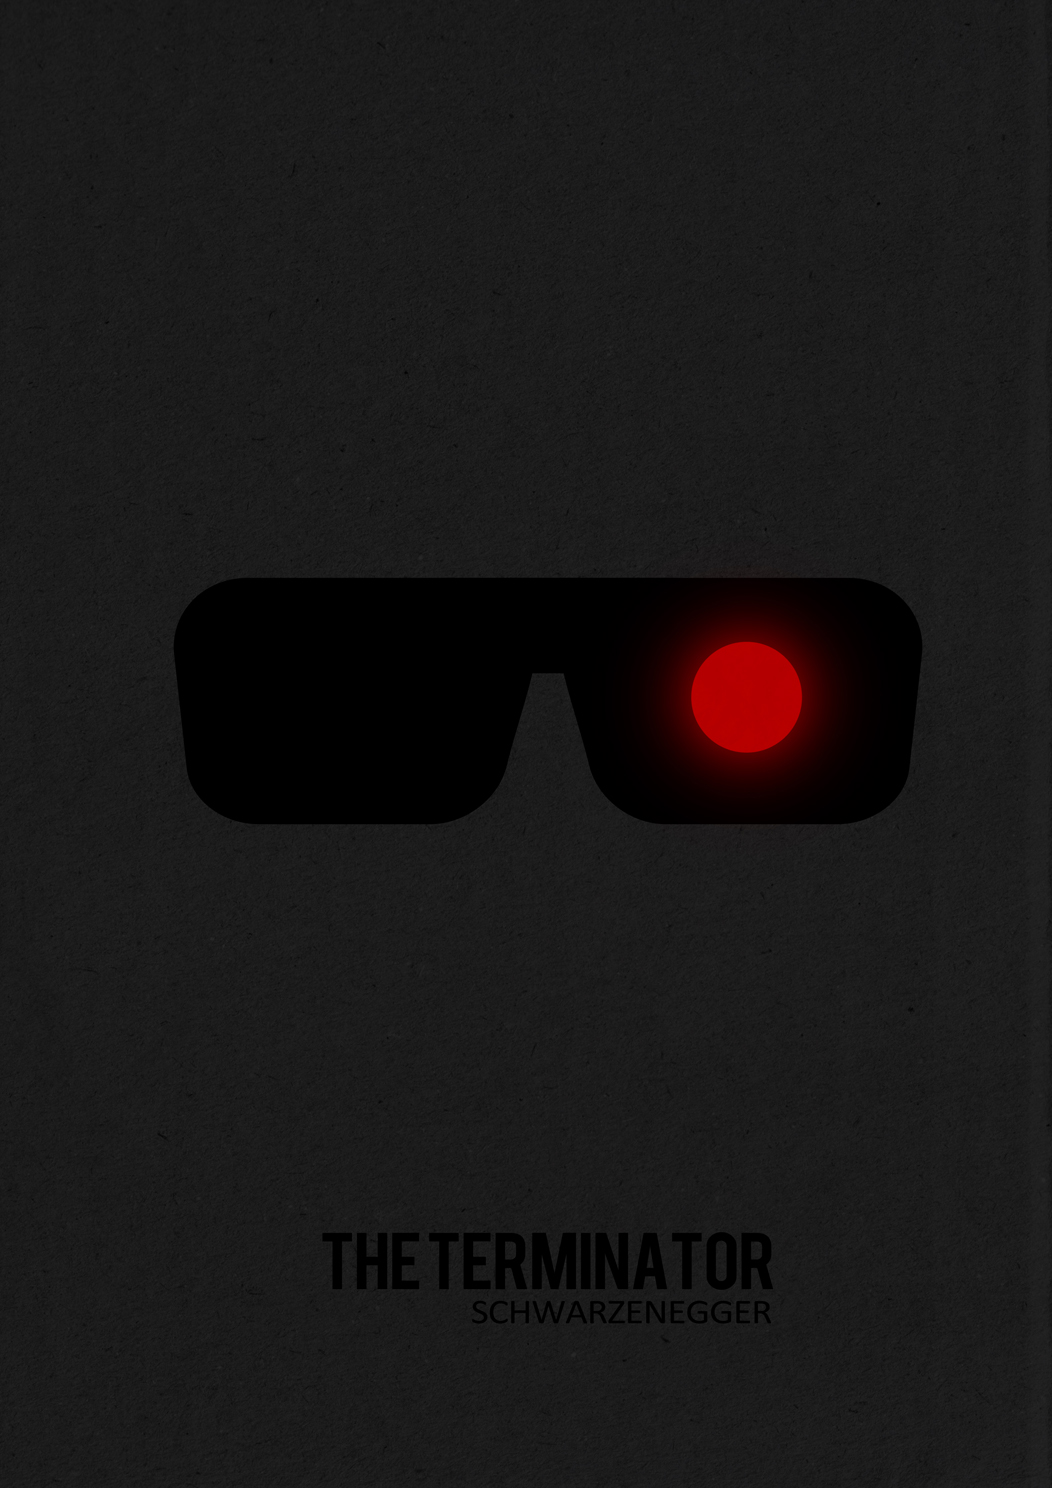 photoshop submission for minimalist movie posters